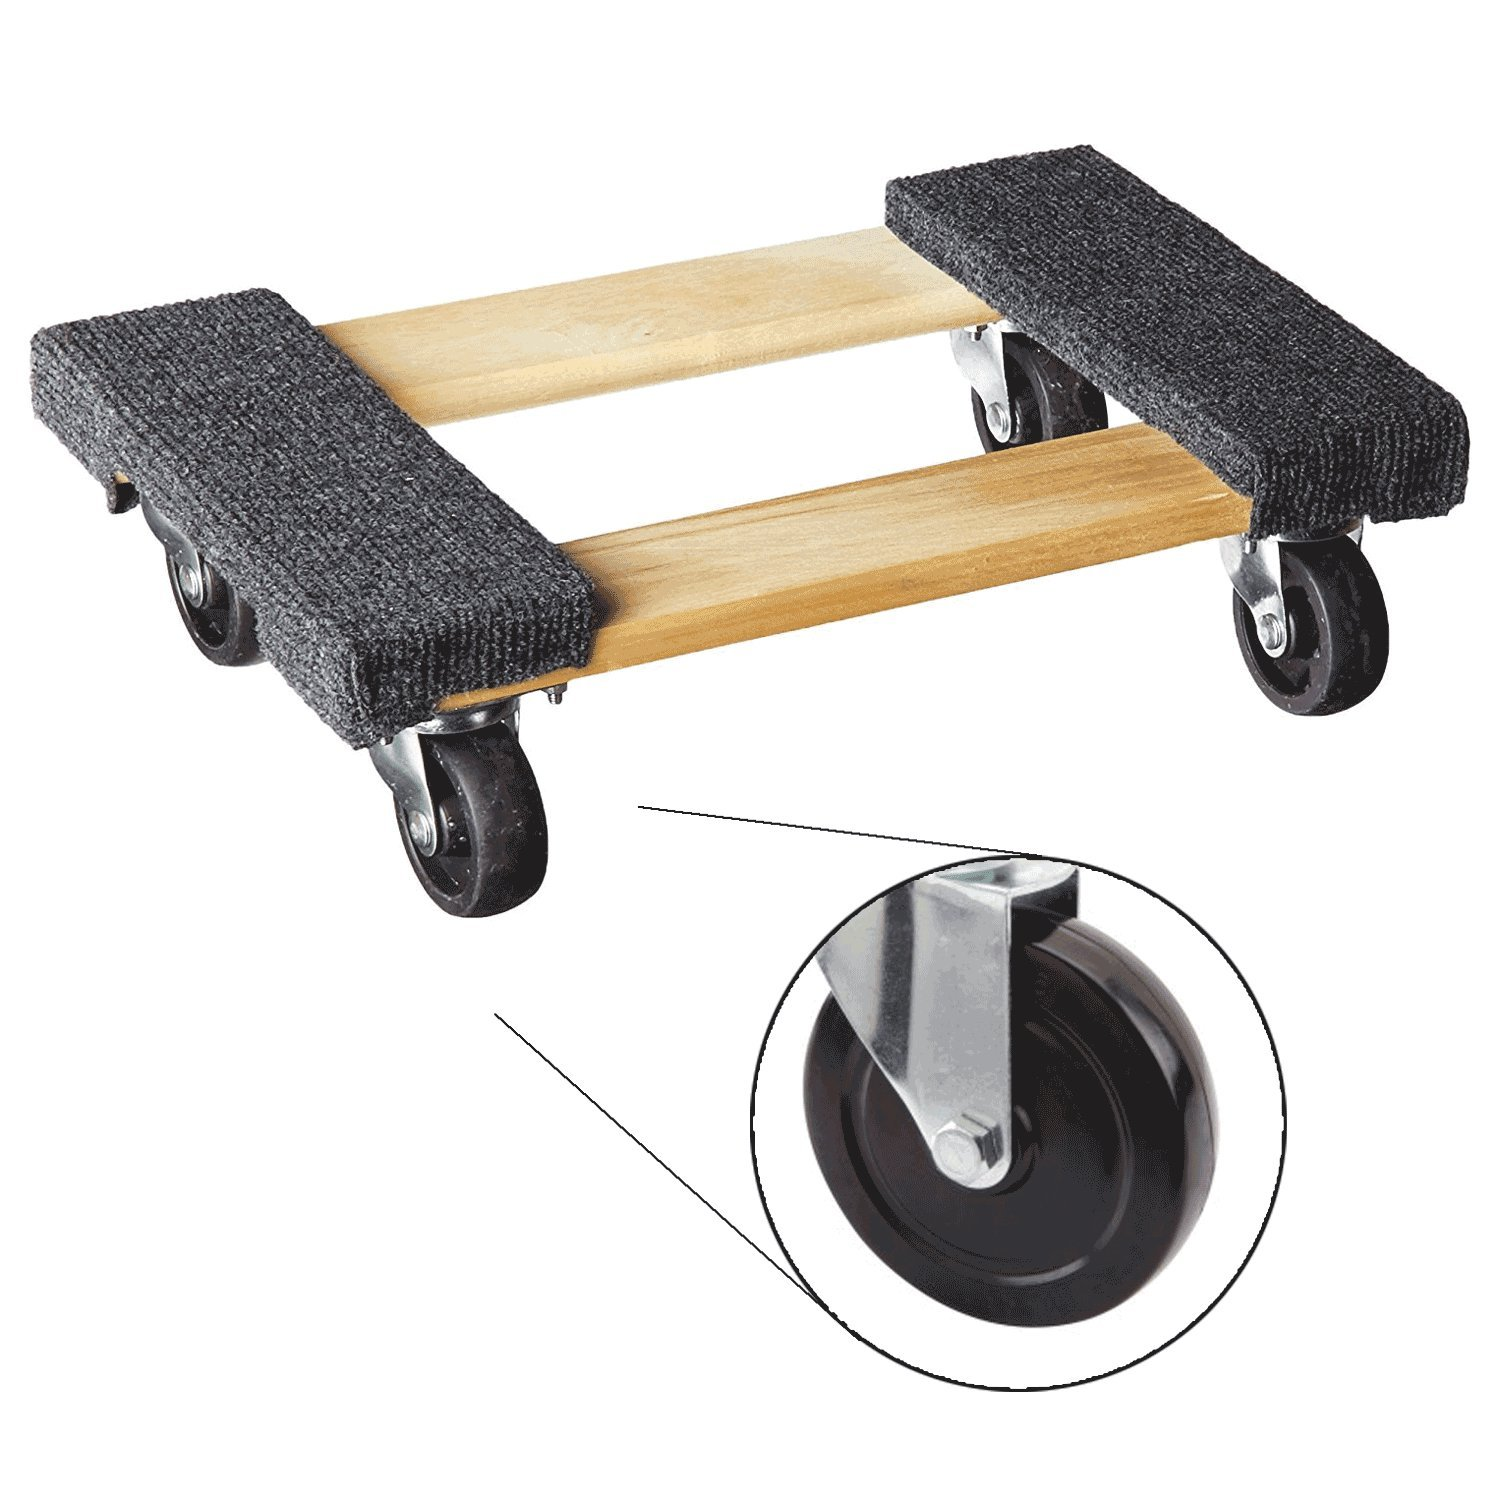 Plataforma con ruedas piano Dolly. Mini rodillo compacto Dolly para mover muebles. Medidas de la superficie enrollada: 30,5 x 45,7 cm.